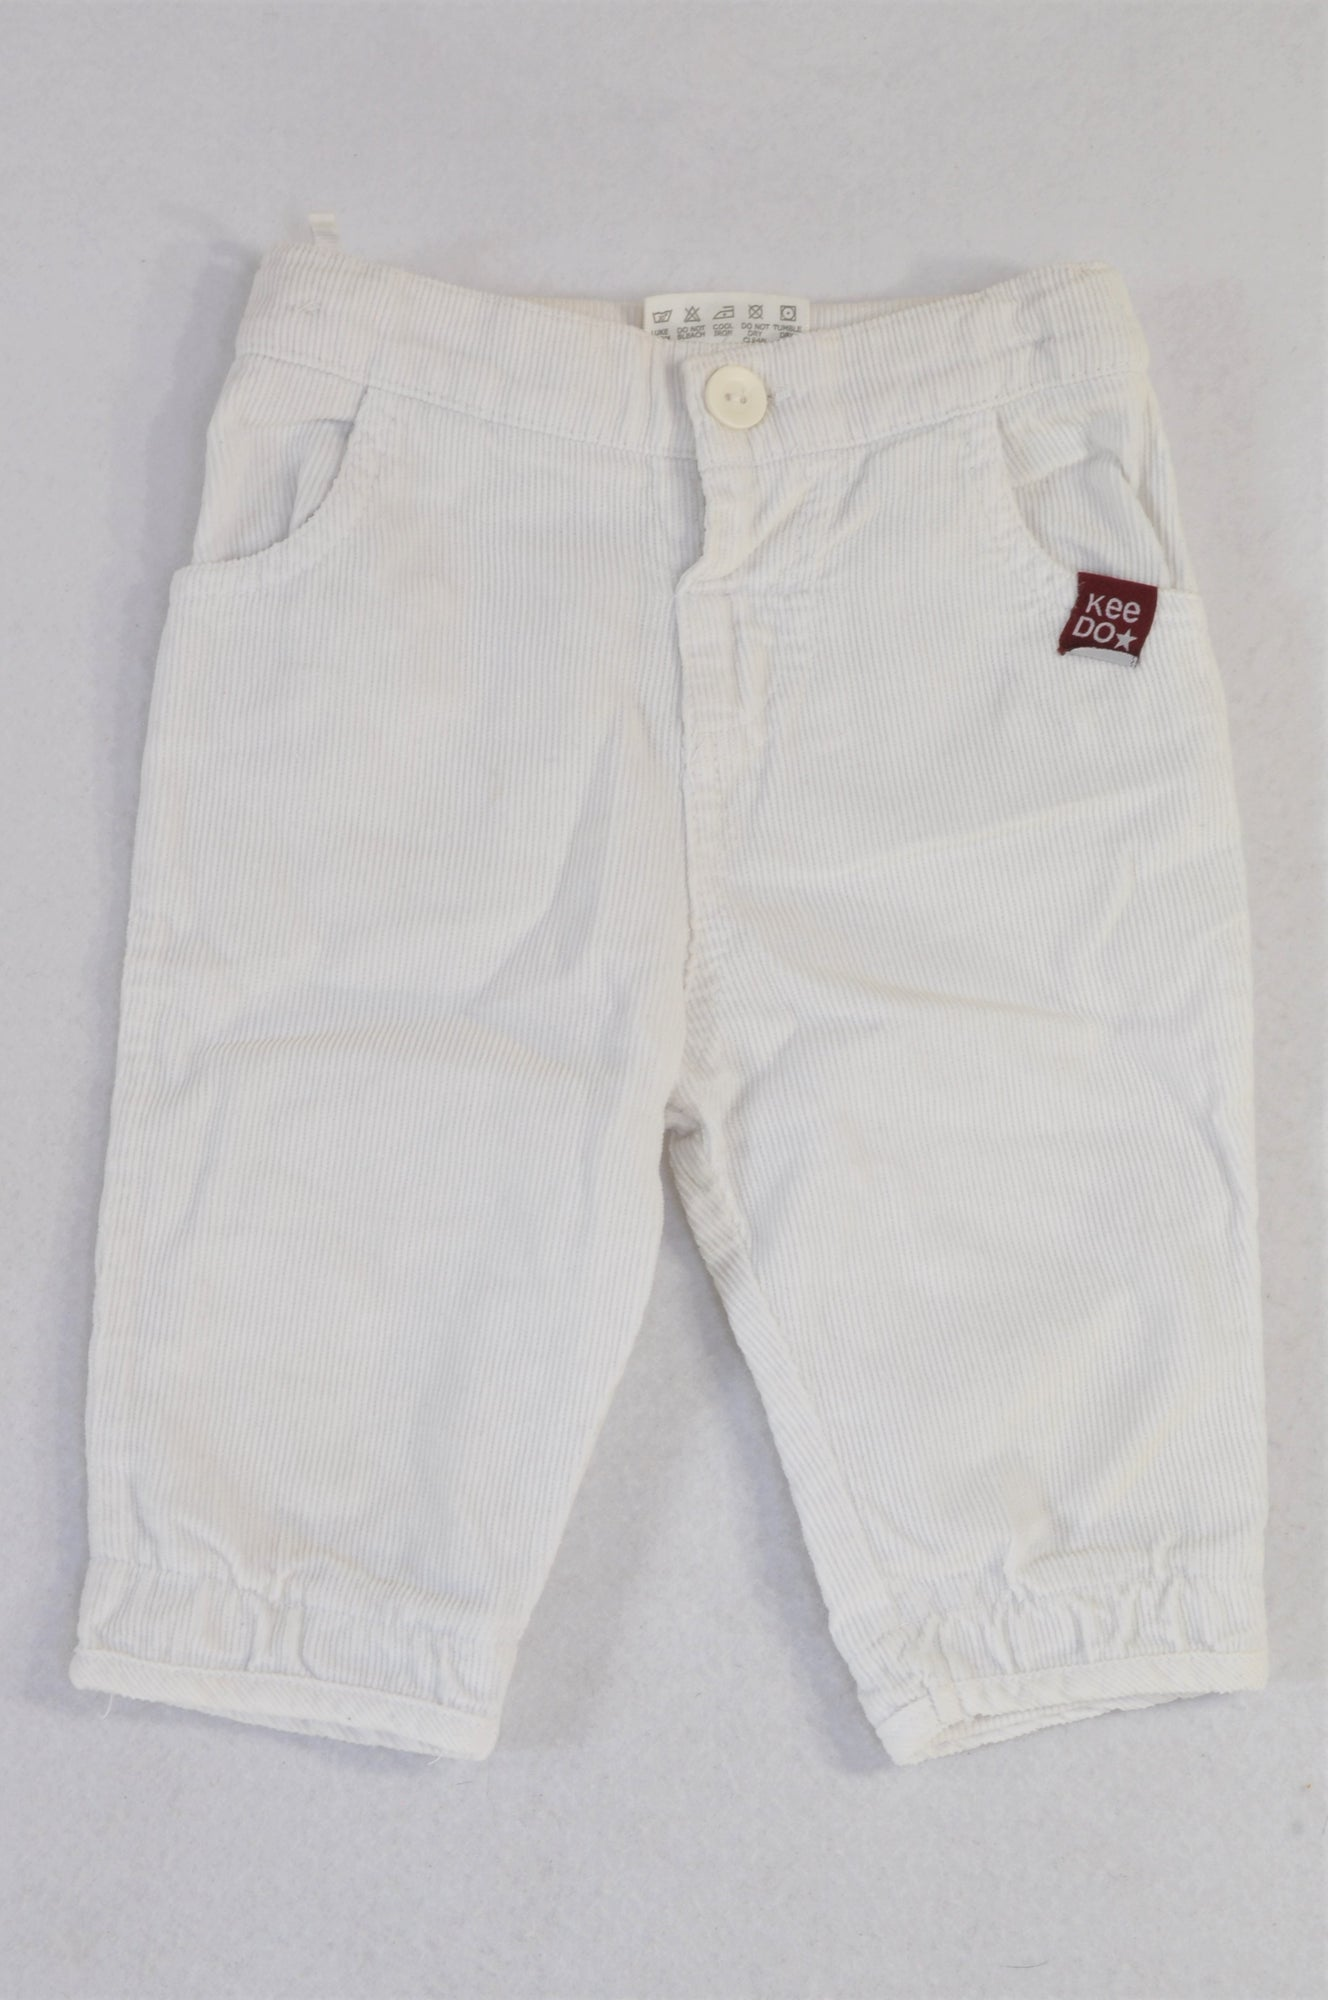 Keedo White Pocket Logo Corduroy Pants Girls 0-3 months